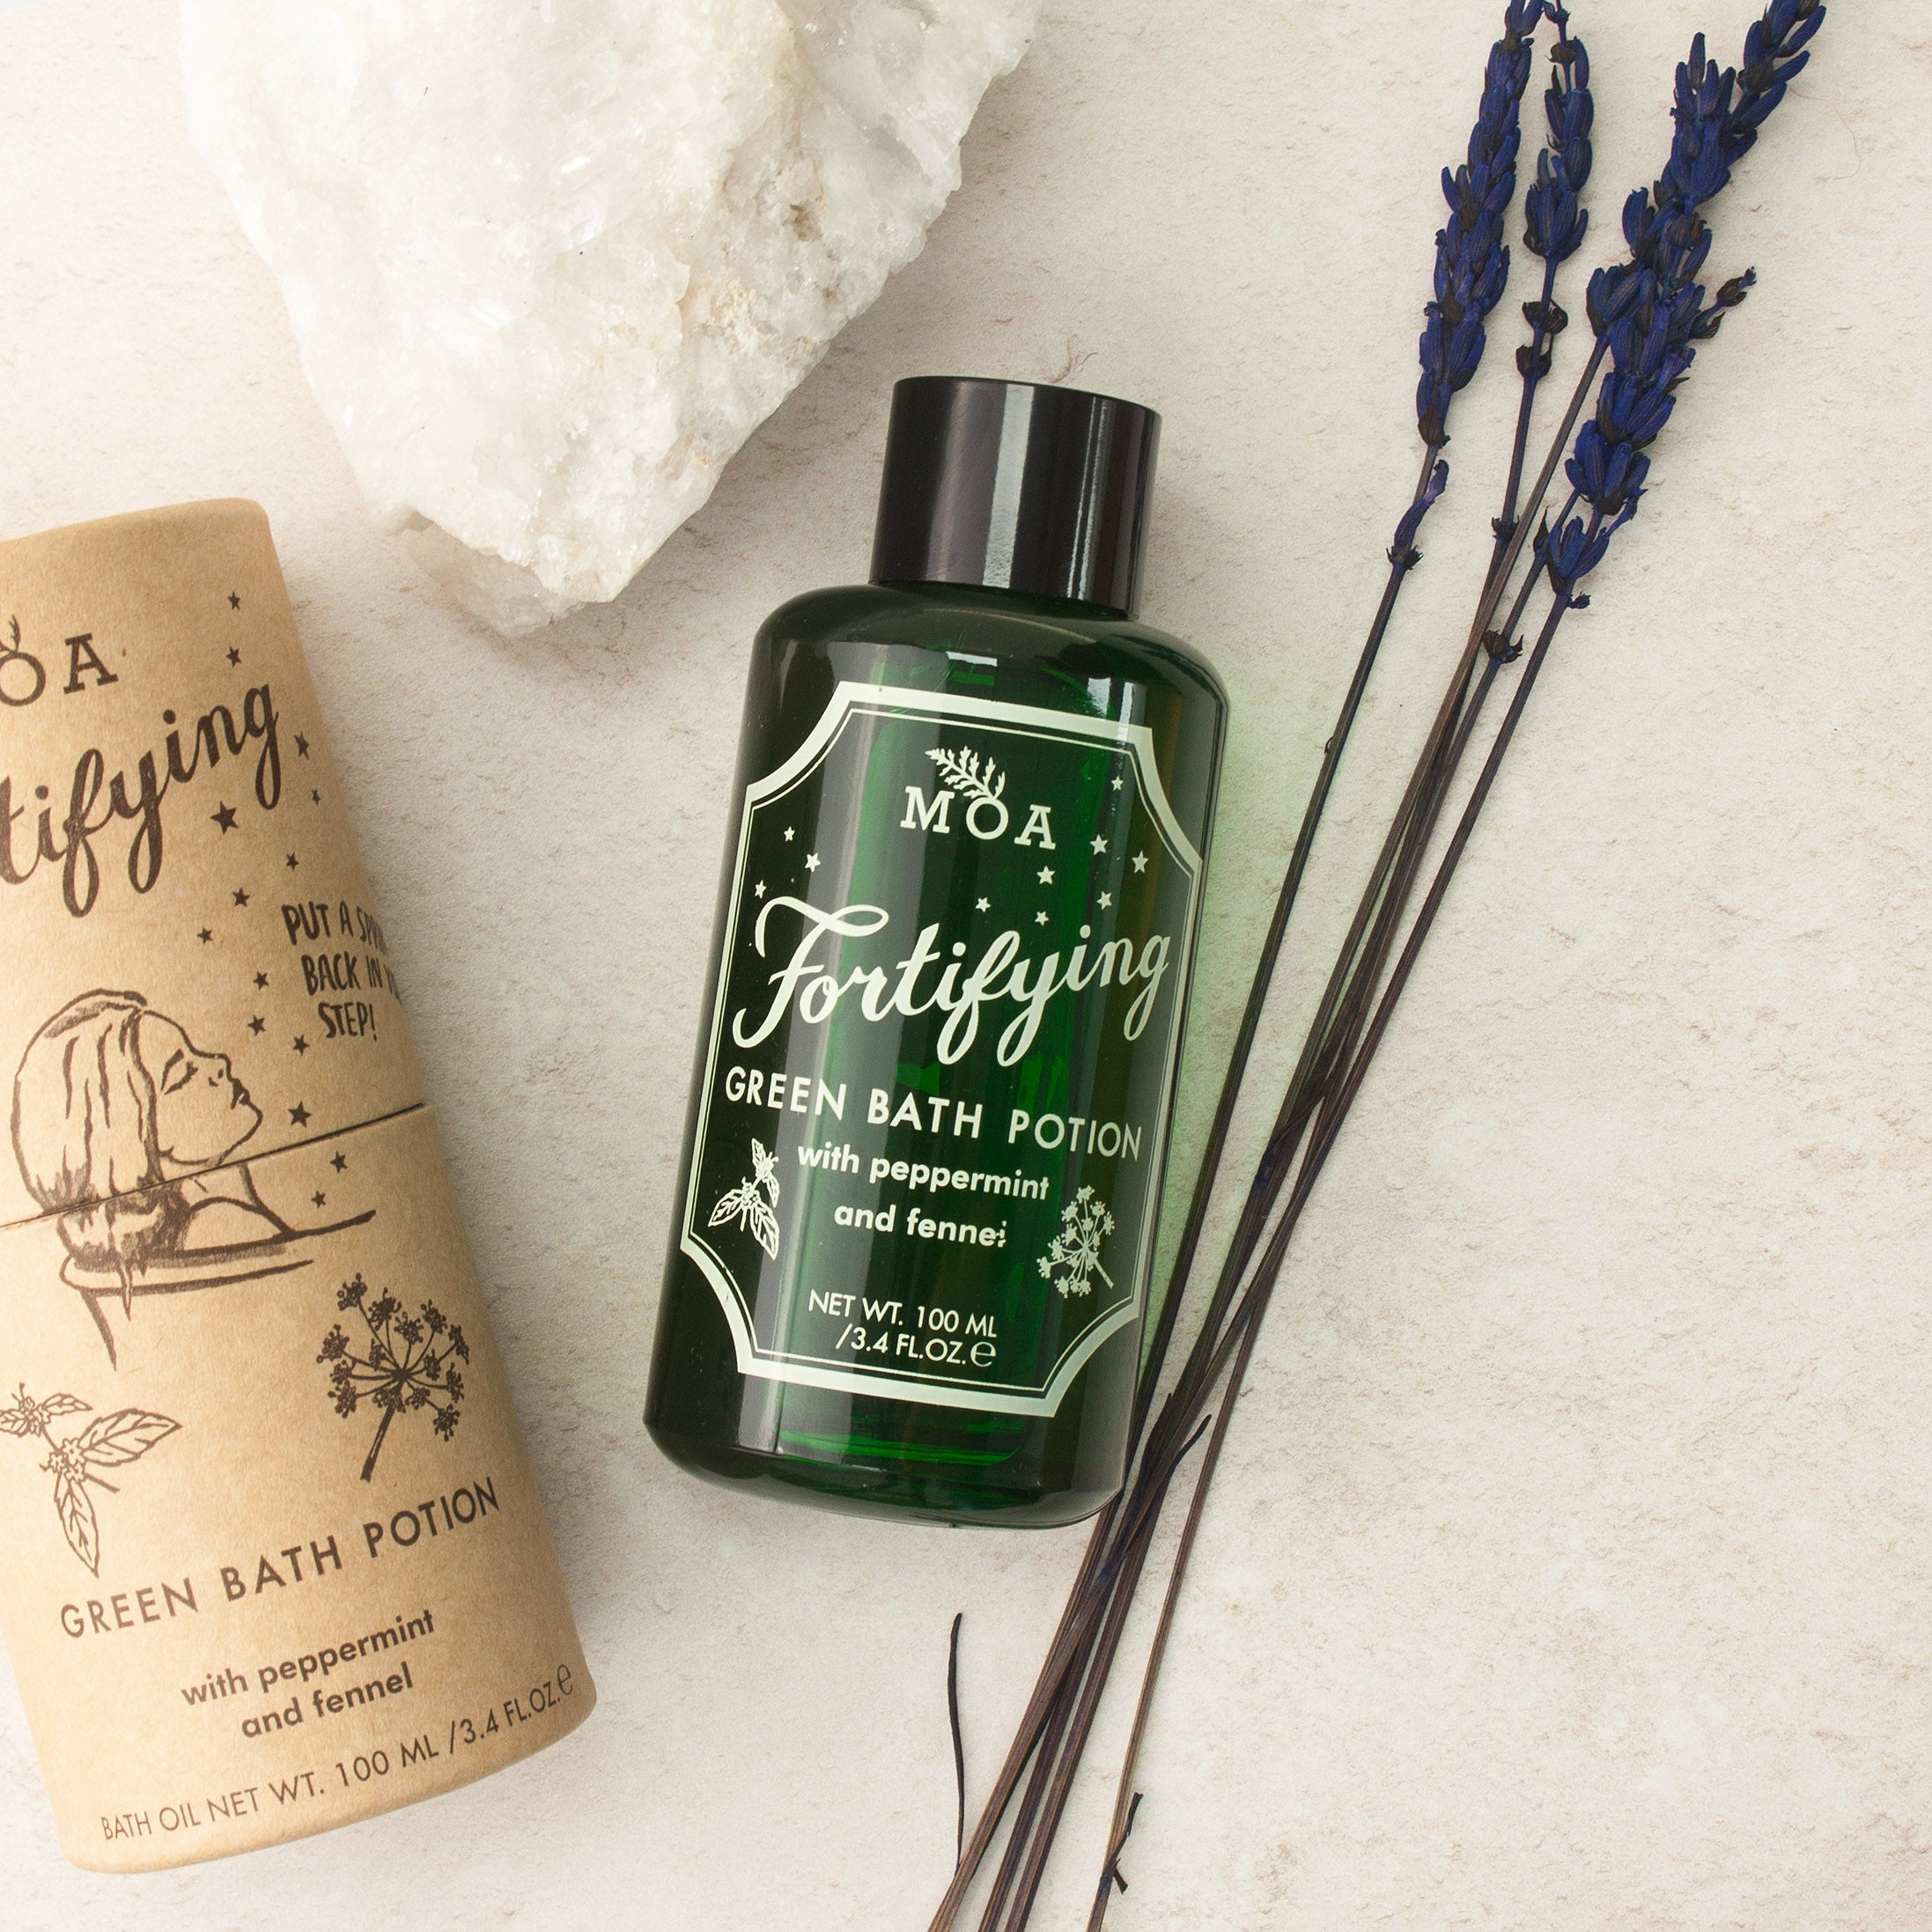 Image of Magic Organic Apothecary Fortifying Green Bath Potion